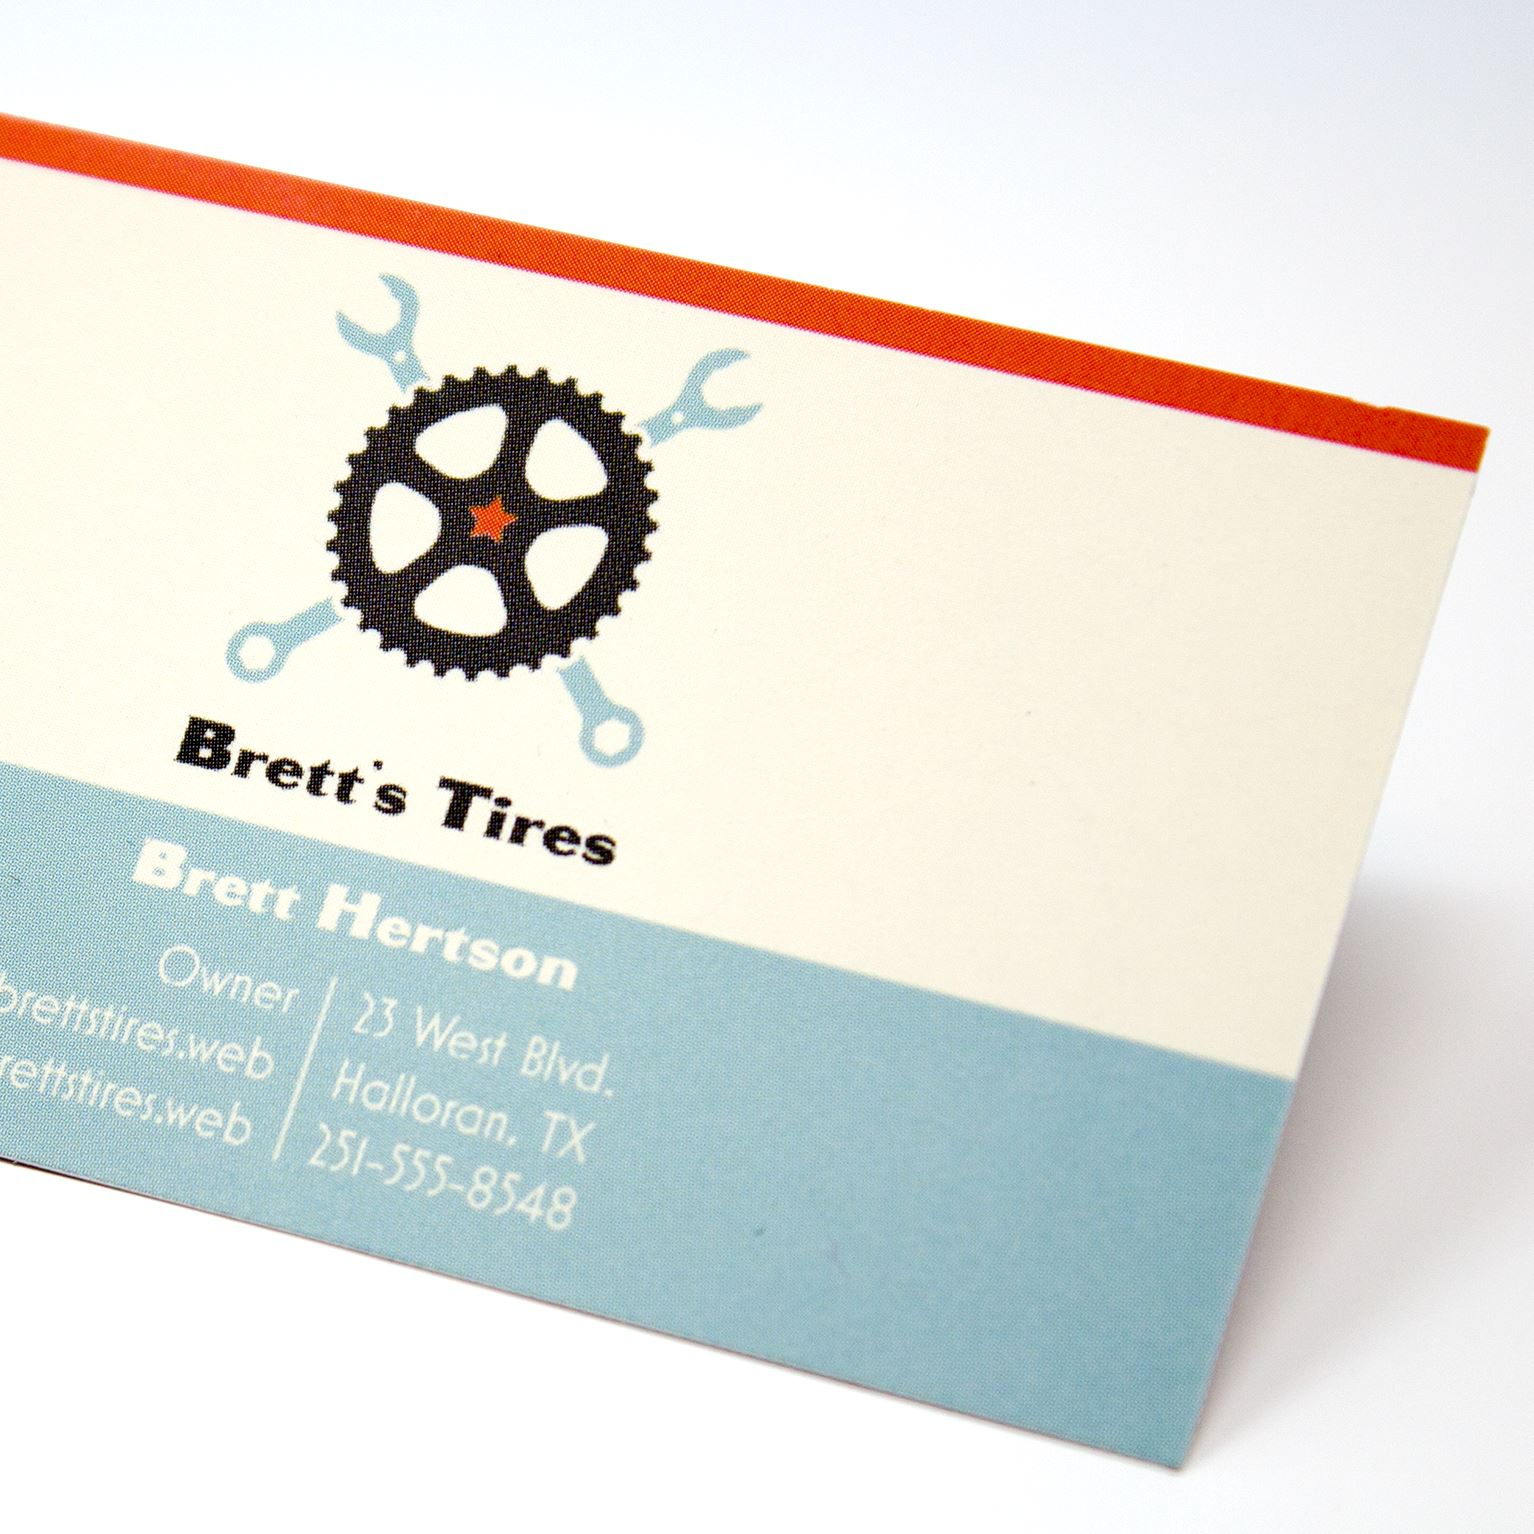 Soft touch business cards soft touch coating vistaprint colourmoves